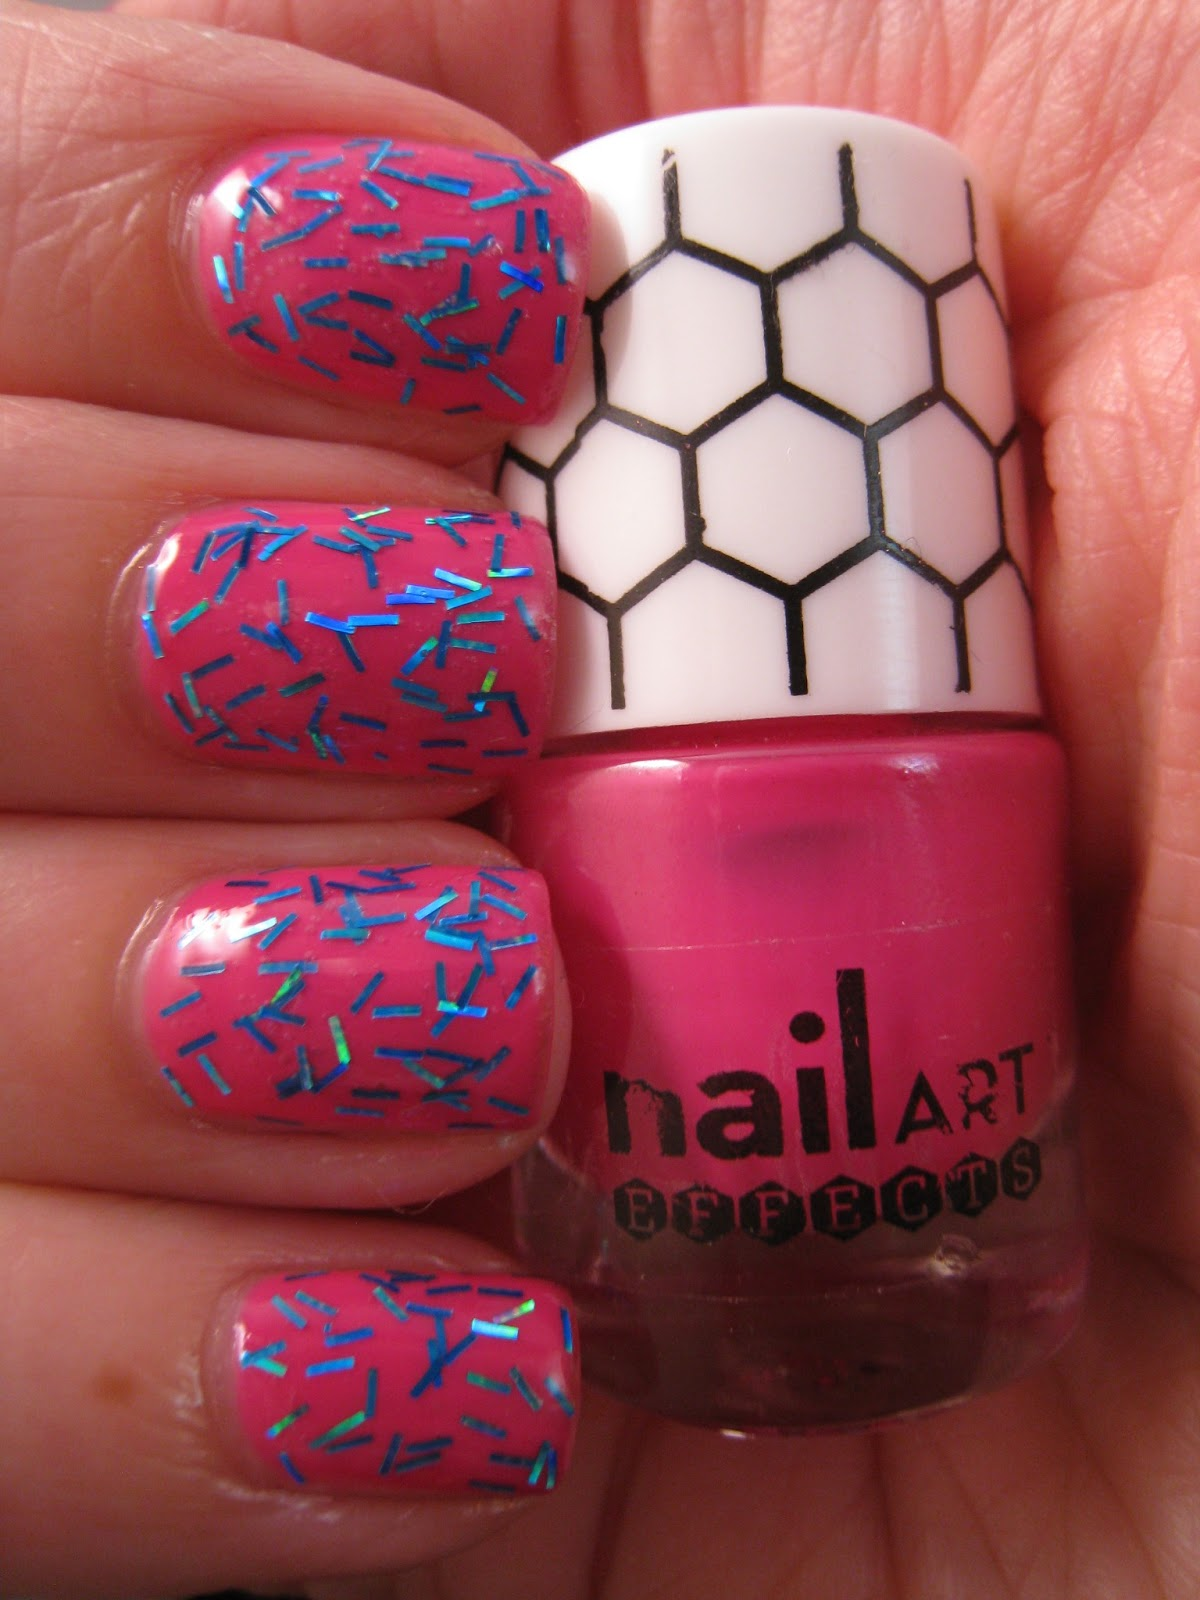 Naily Perfect Neon Pink With Blue Holographic Glitter Bars By